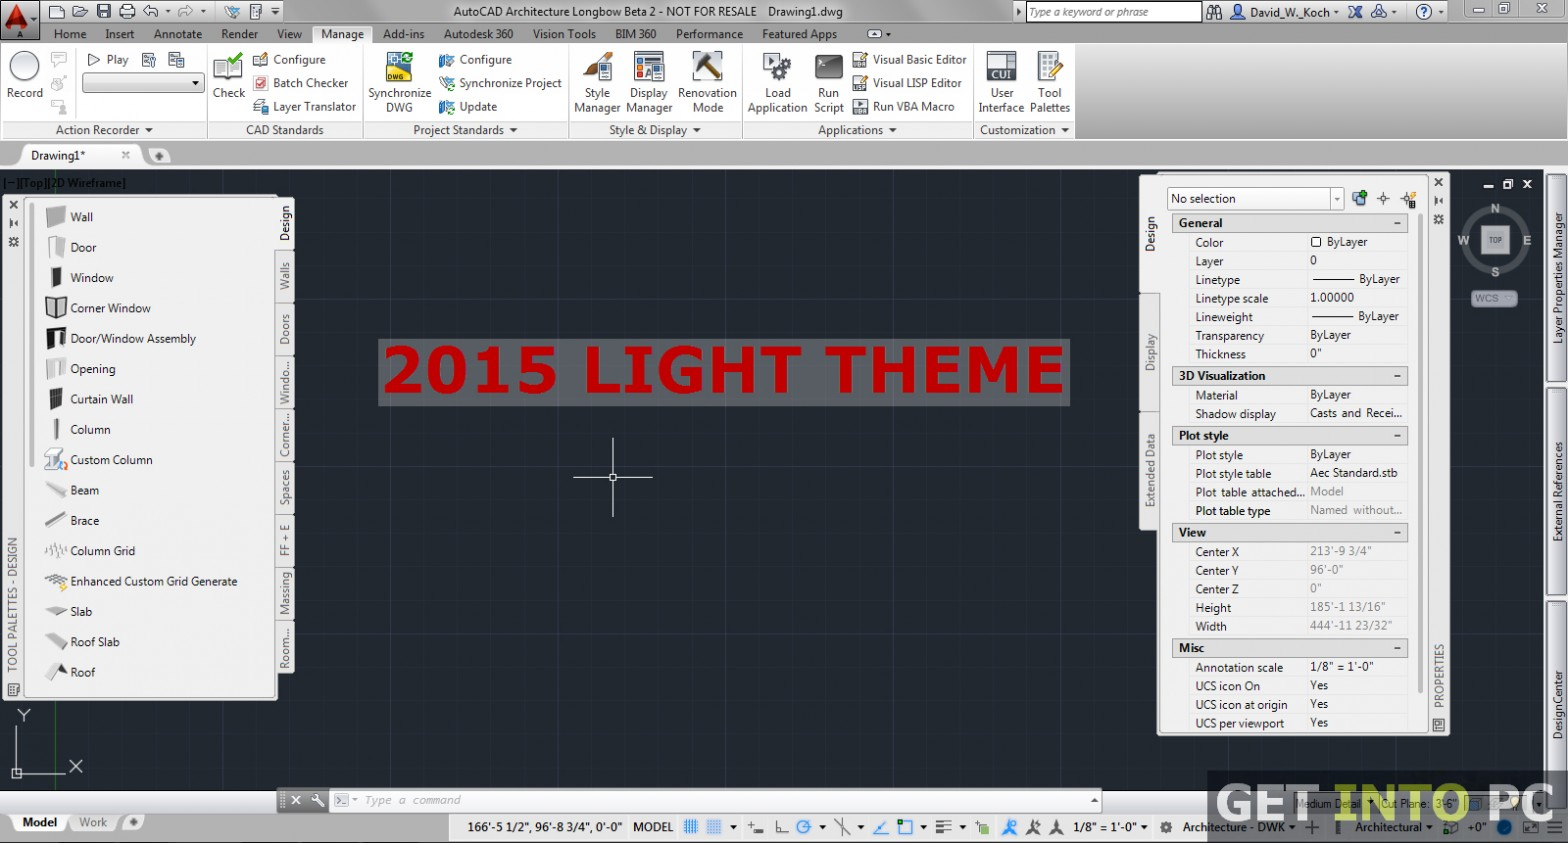 AutoCAD Architecture 2015 Download Free